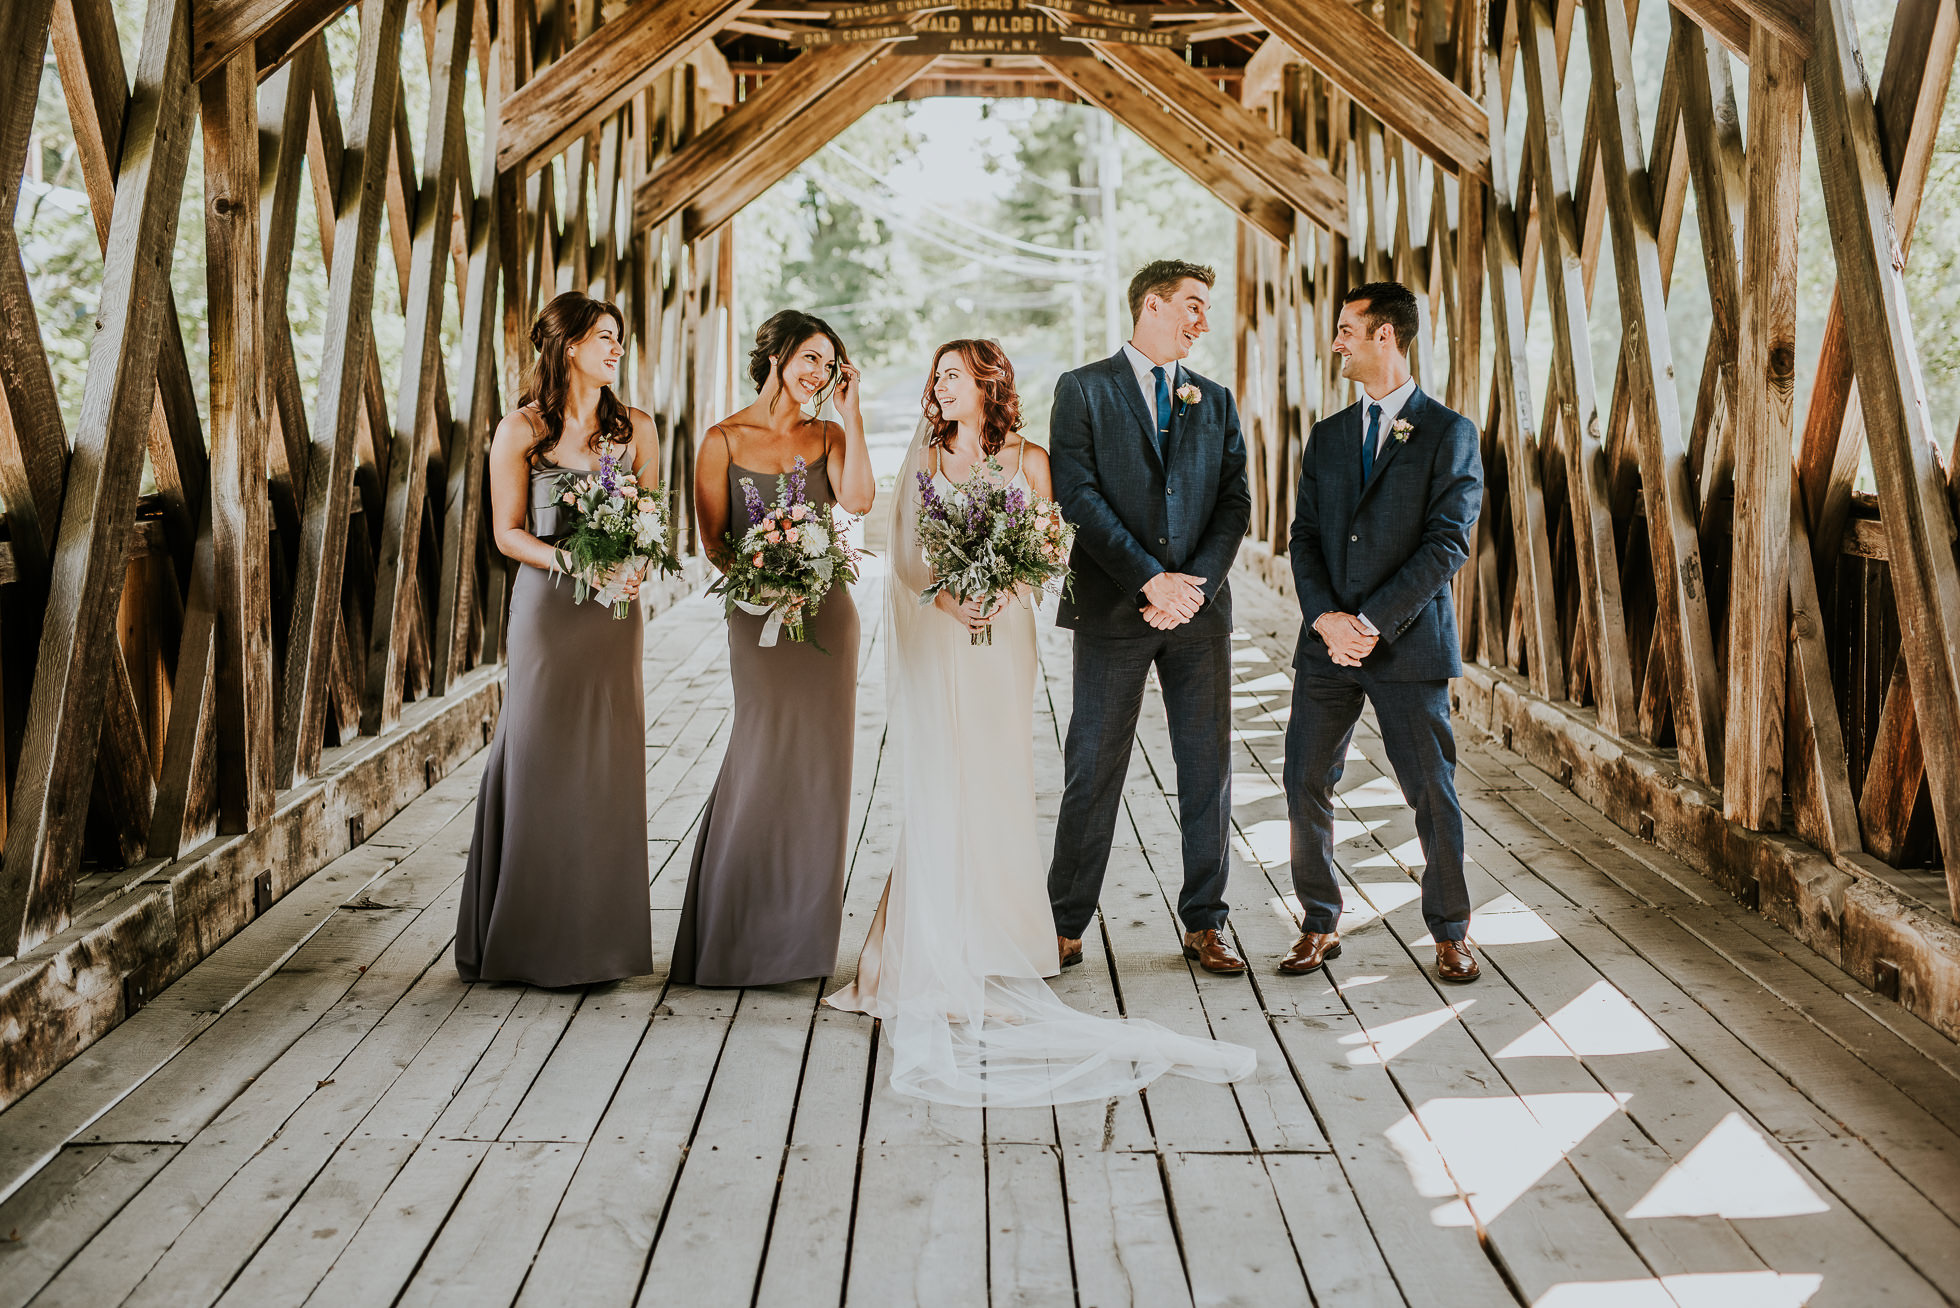 bridal party on bridge at olde tater barn wedding in central bridge, ny photographed by traverse the tides